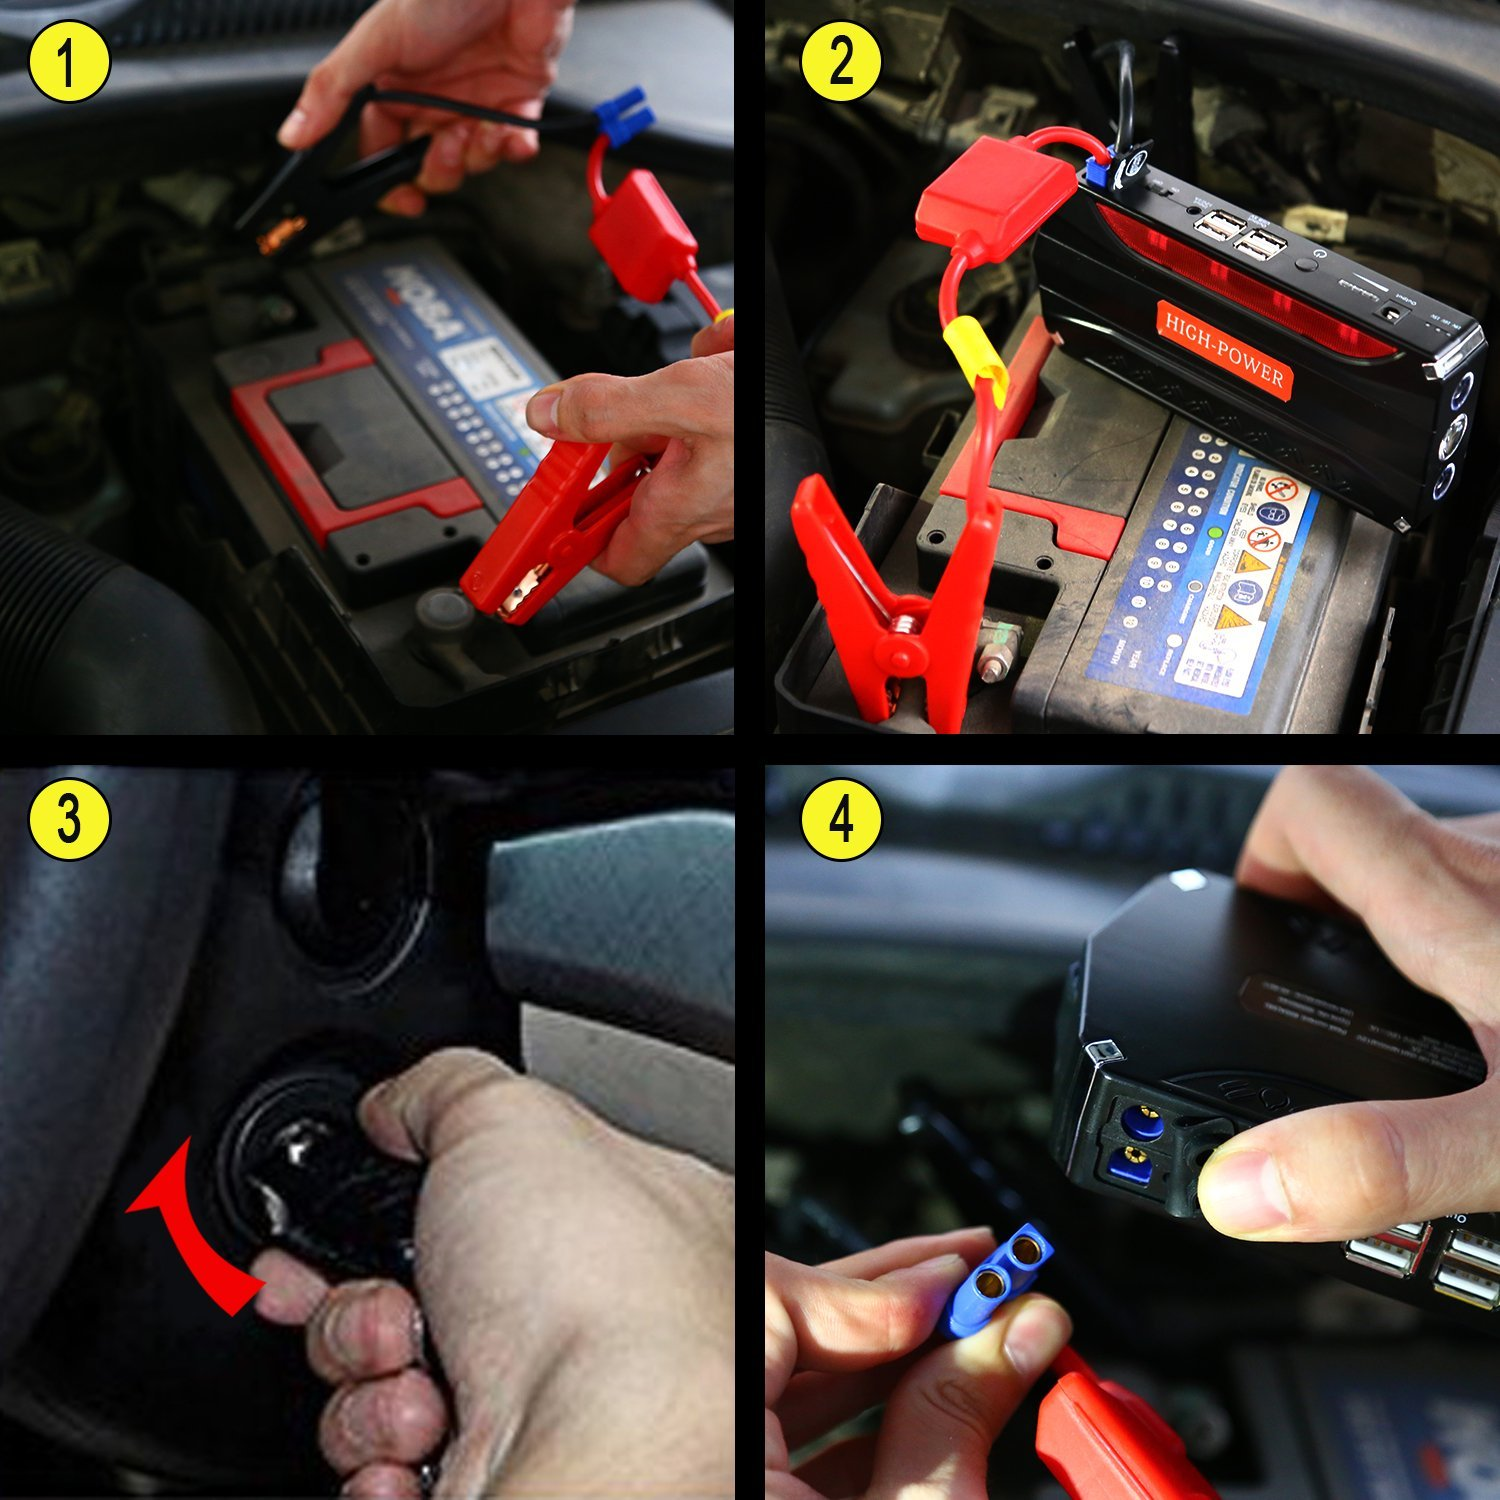 Cargador Power Bank para Coche Kit de Arranque para coche con USB Laptop Moto YOKKAO Arrancador de Emergencia para coche 16800mAh 600 Luz LED Smartphone etc. Jump Starter Bater/ía Port/átil de Emergencia para coche